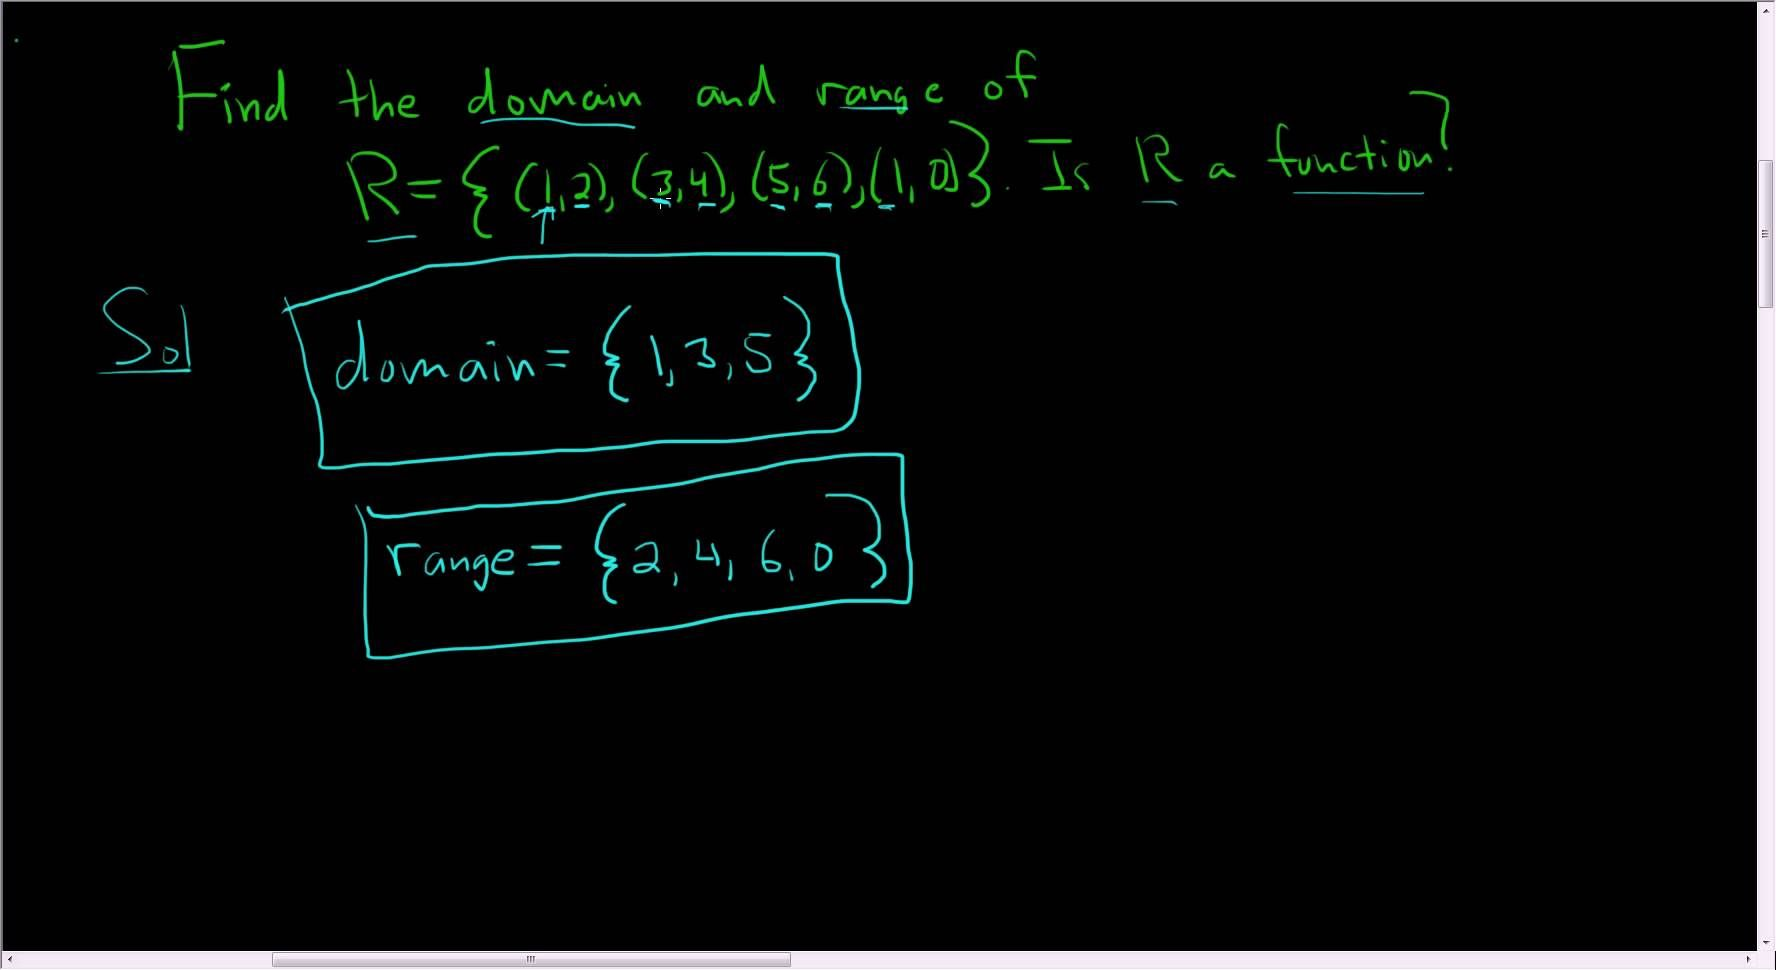 Determining if a relation is a function and finding the